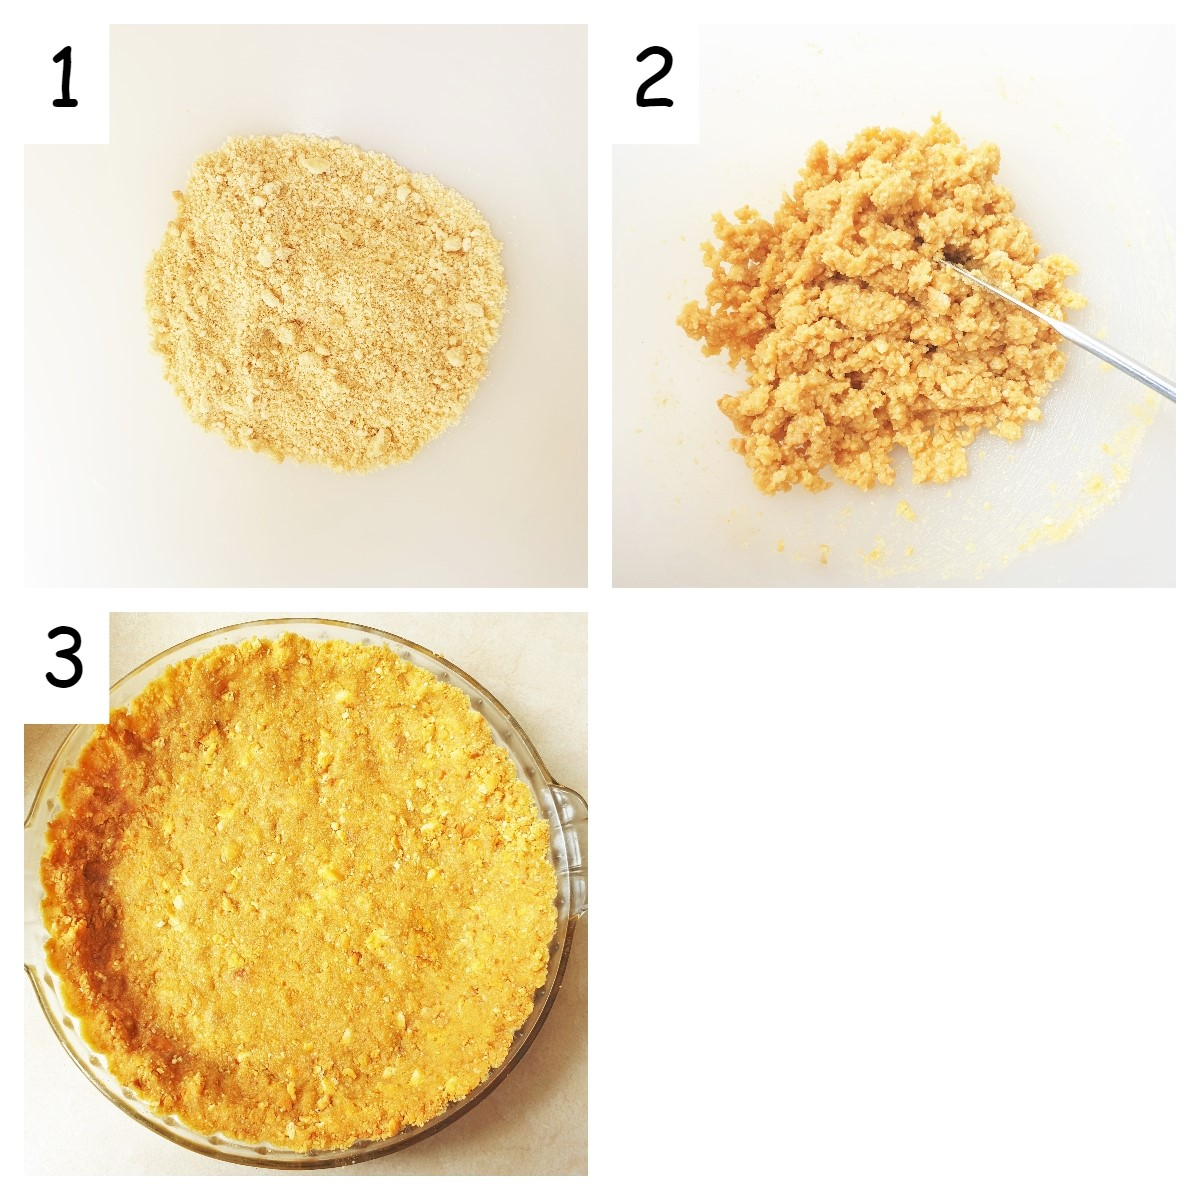 Collage of three images showing the steps for making the biscuit crust for the lemon meringue pie.